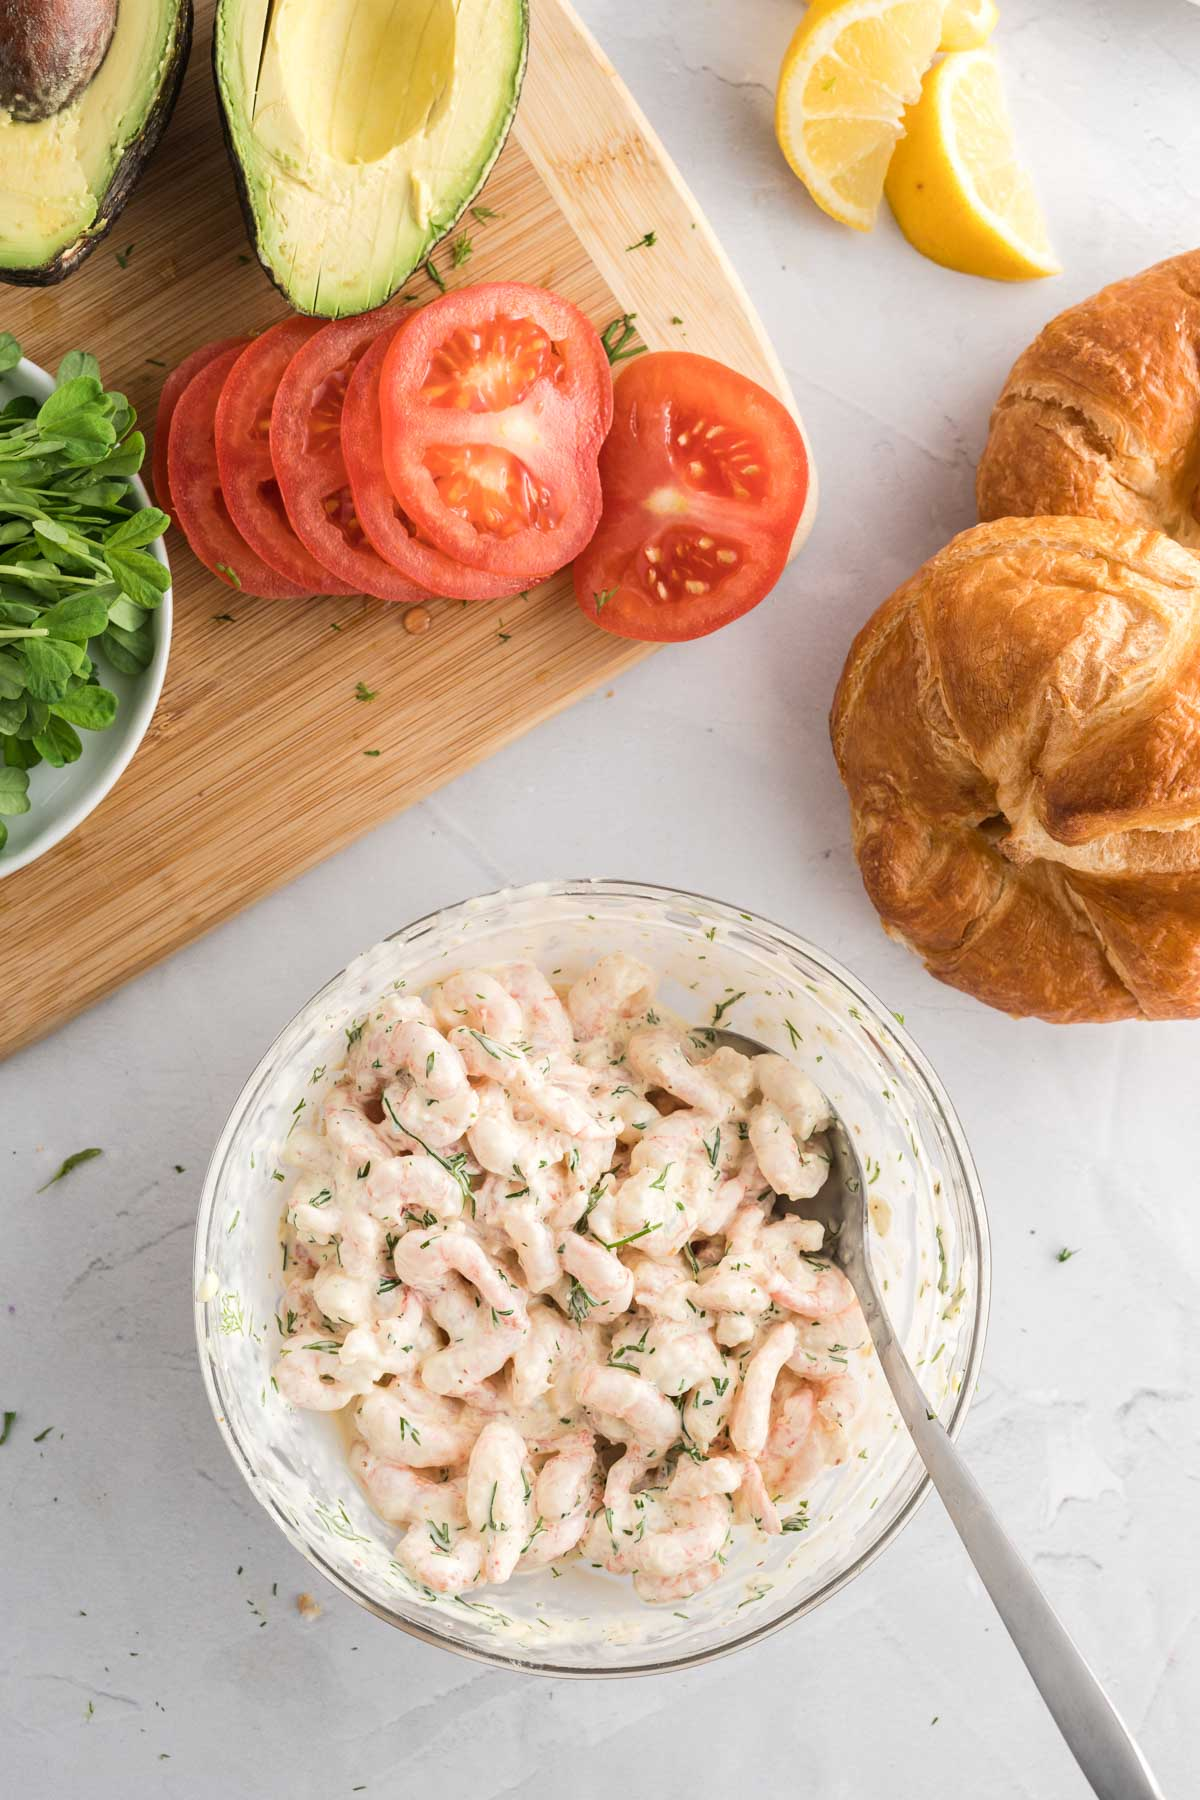 Shrimp in a bowl mixed with mayonnaise, mustard, lemon juice and fresh dill.